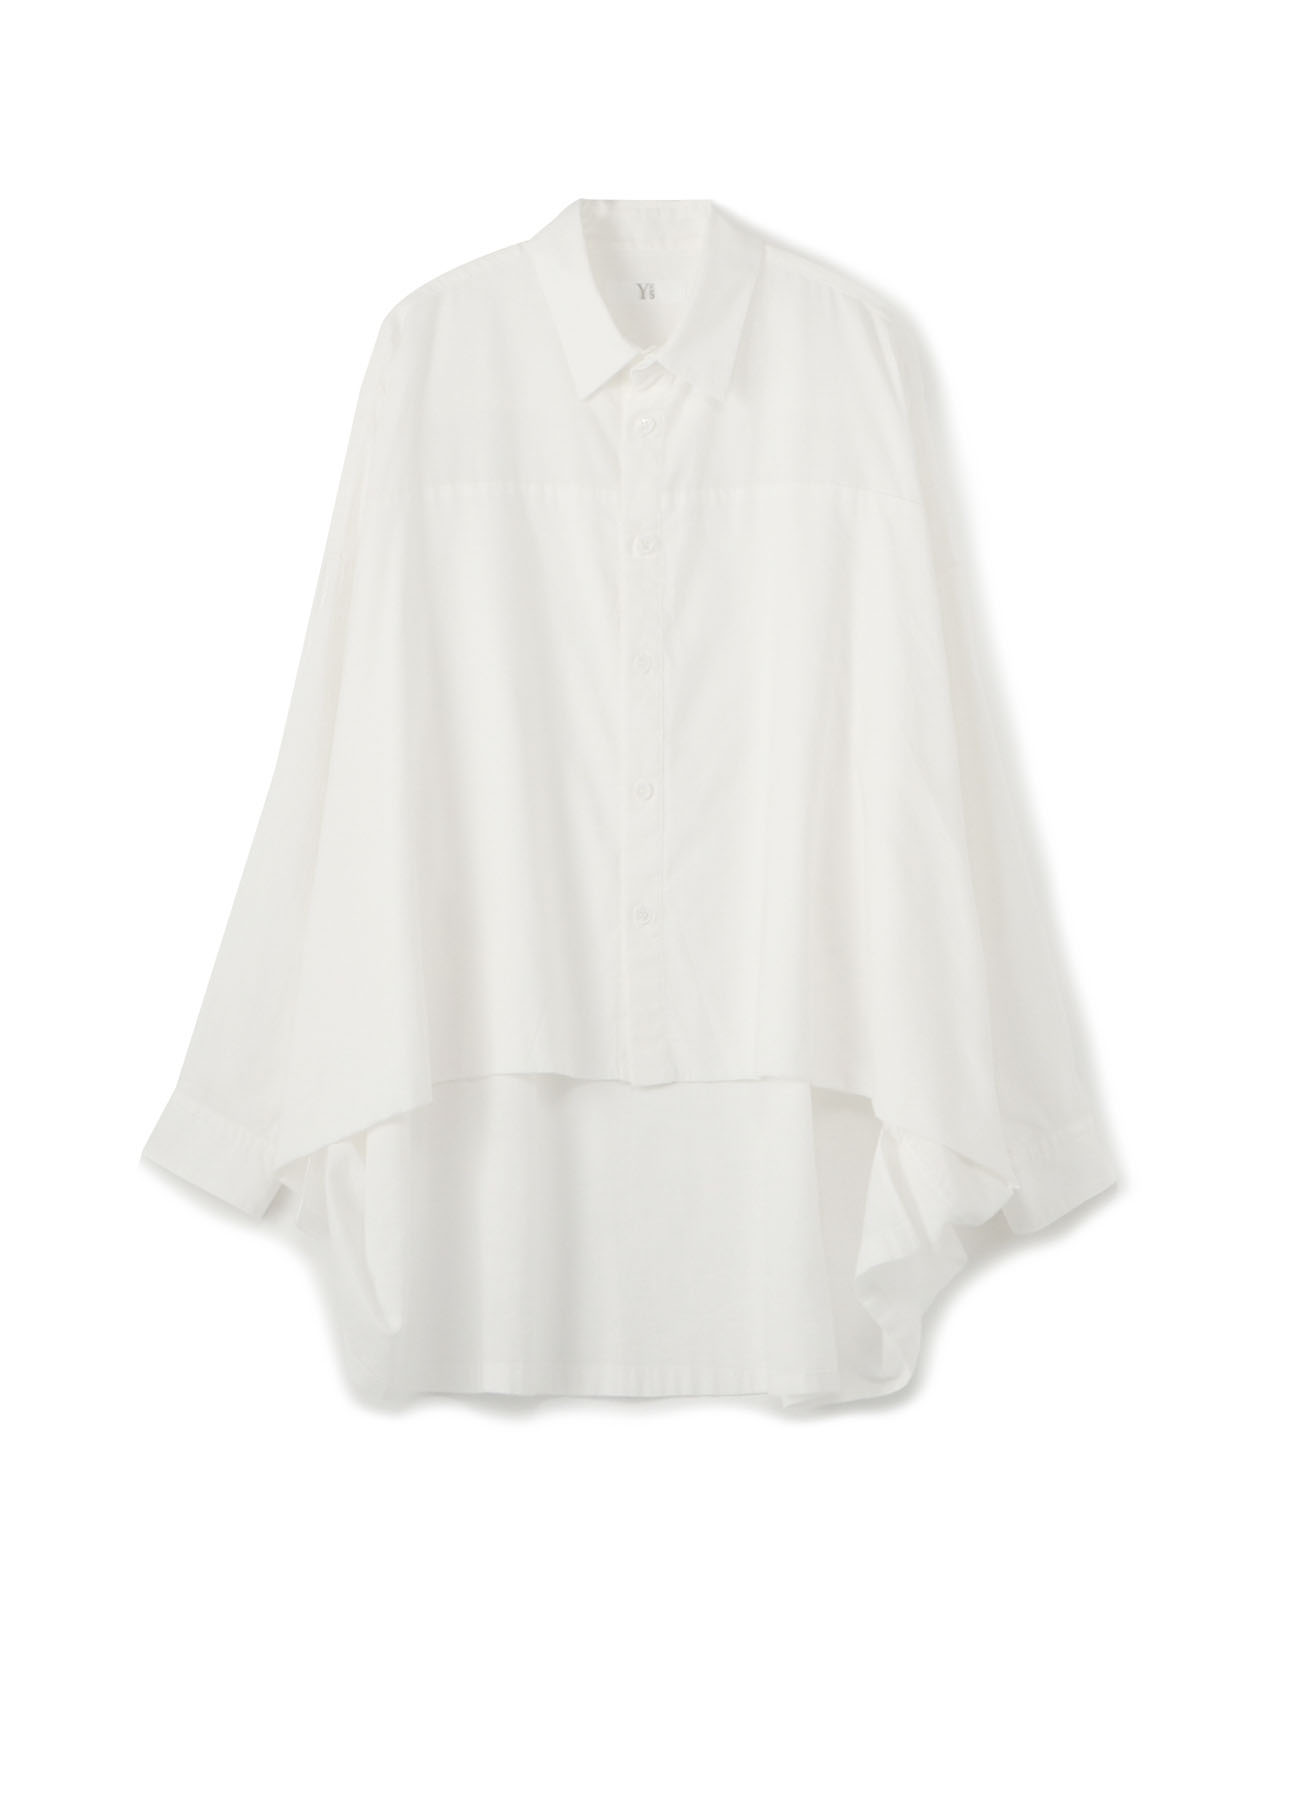 Y's-BORN PRODUCT LAREYED BIG BLOUSE